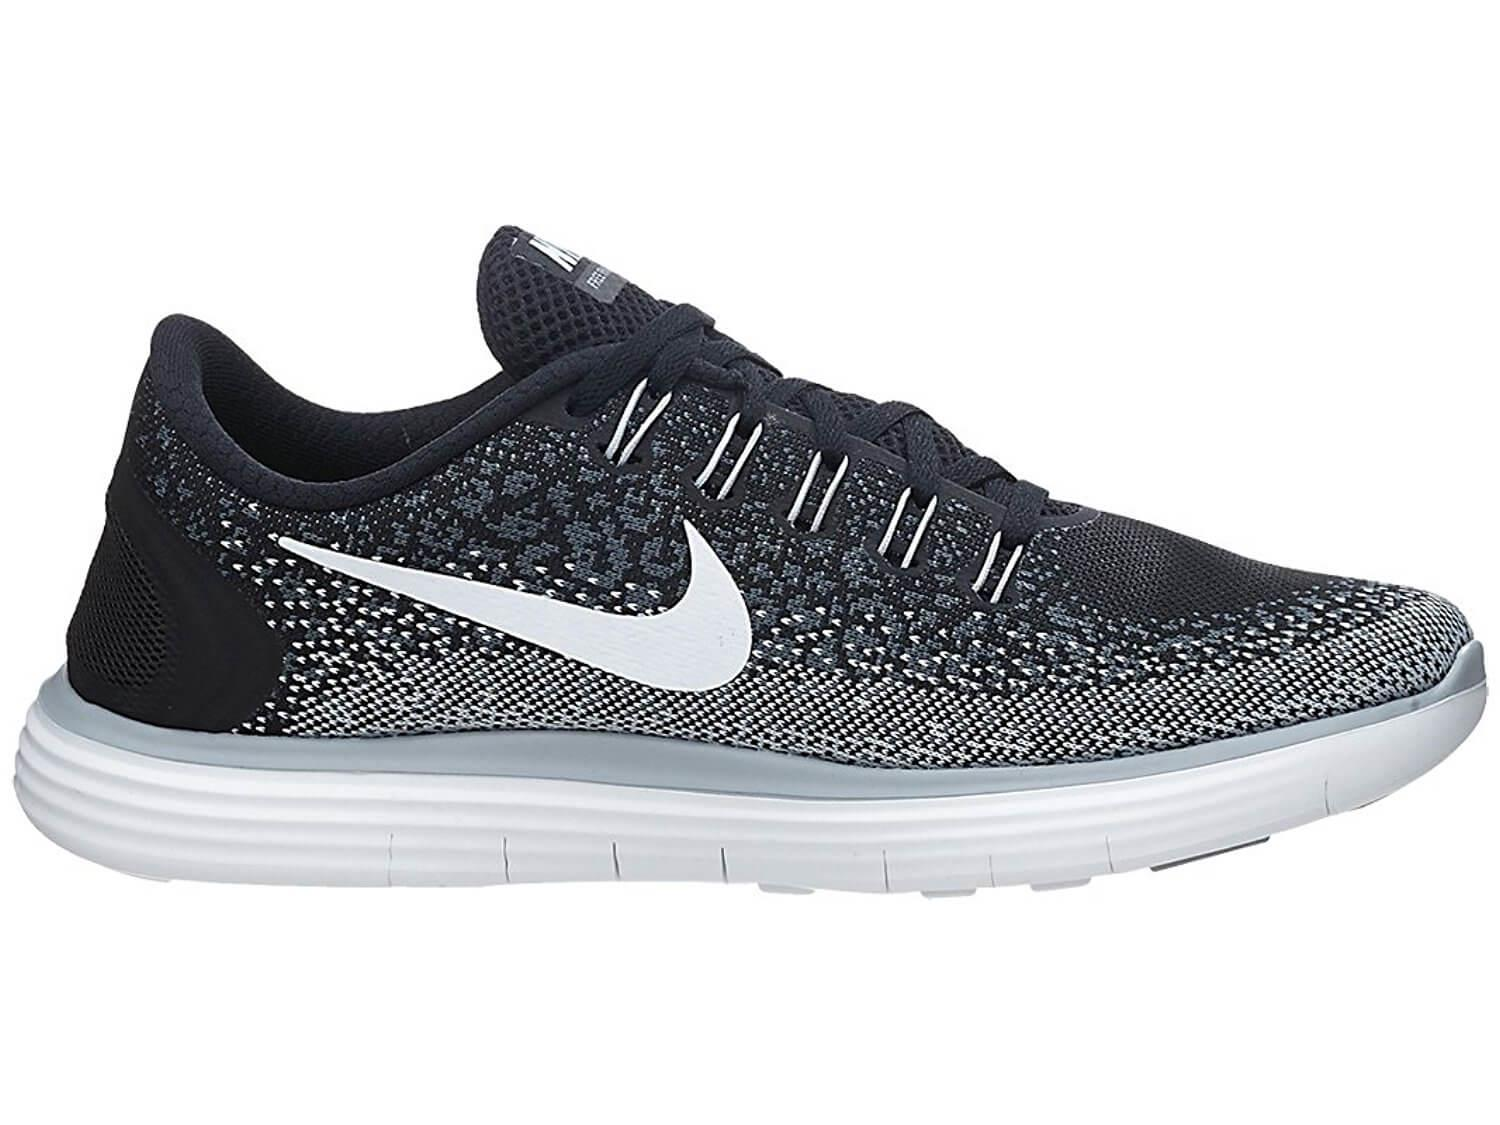 1f4ba7490aa ... Responsiveness and cushioning go hand-in-hand with the Nike Free RN  Distance s midsole ...